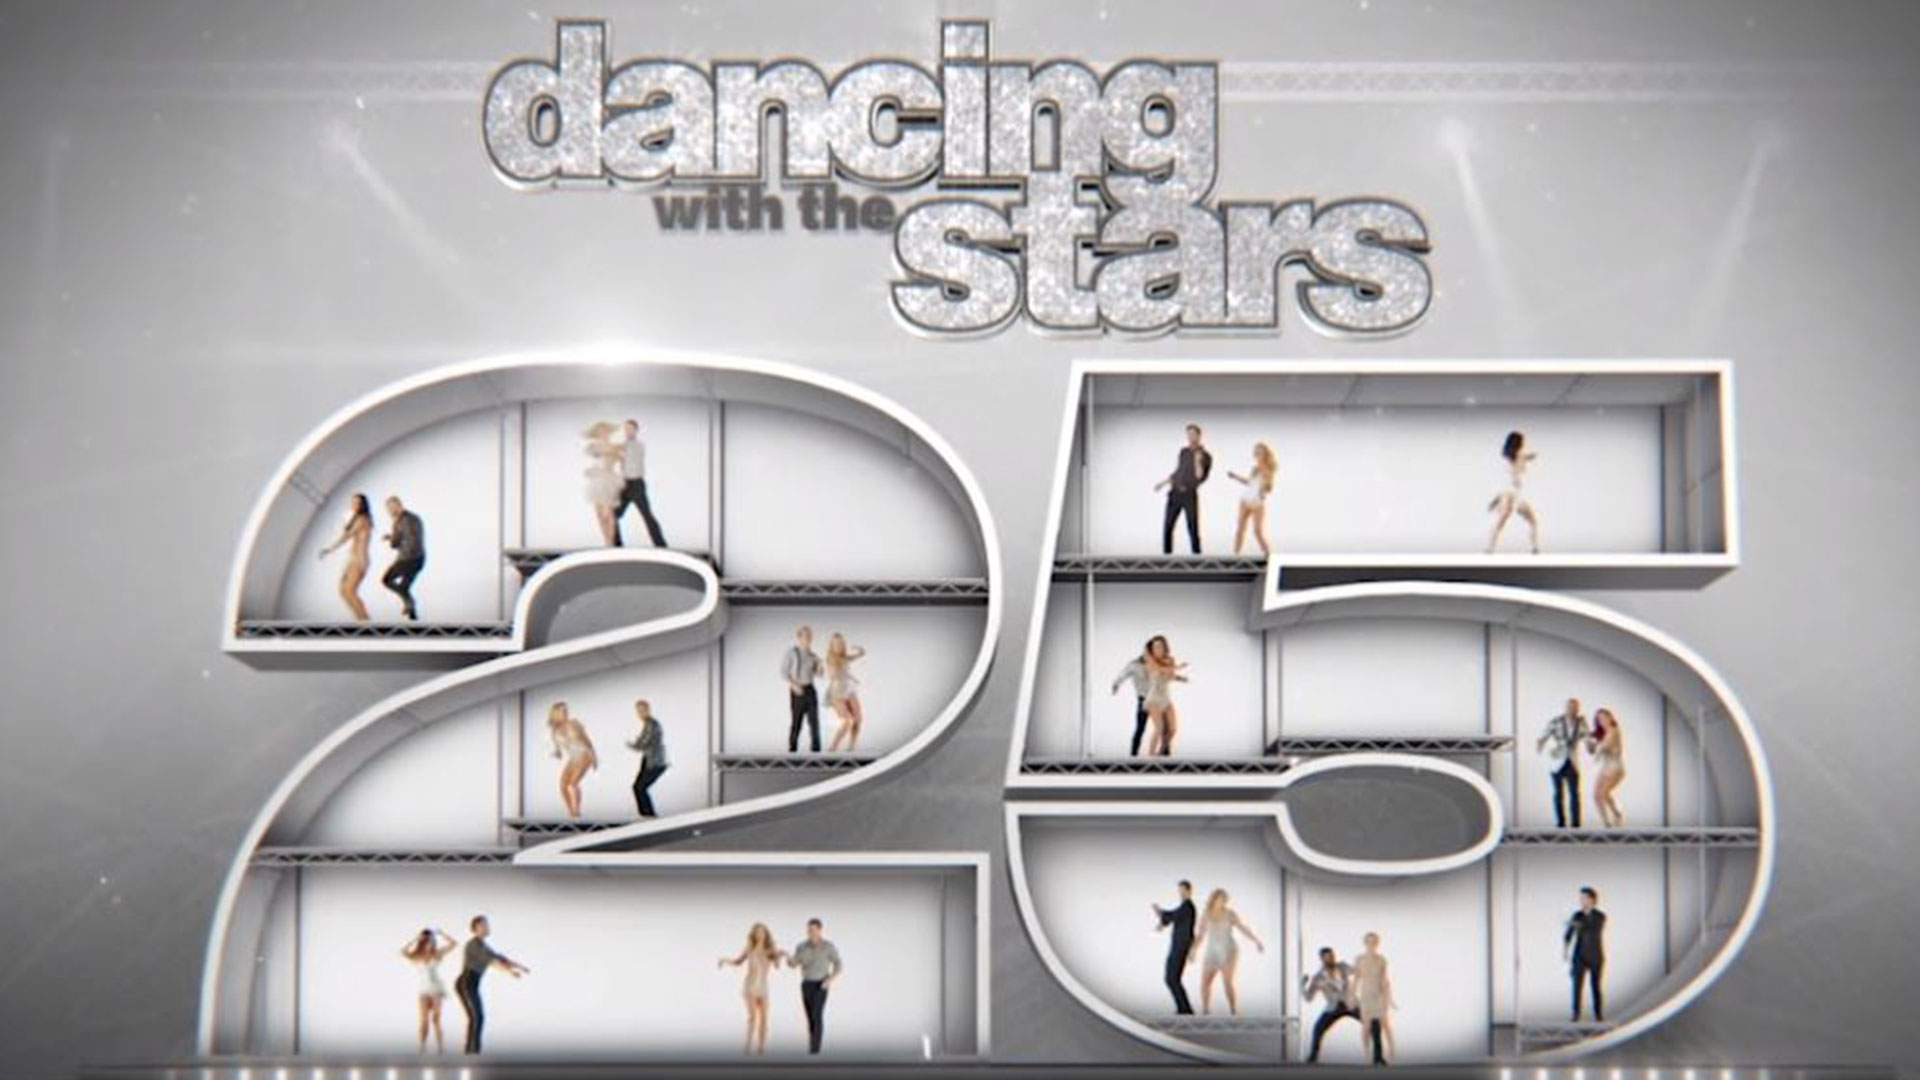 ABC's 'Dancing with the Stars' season 25